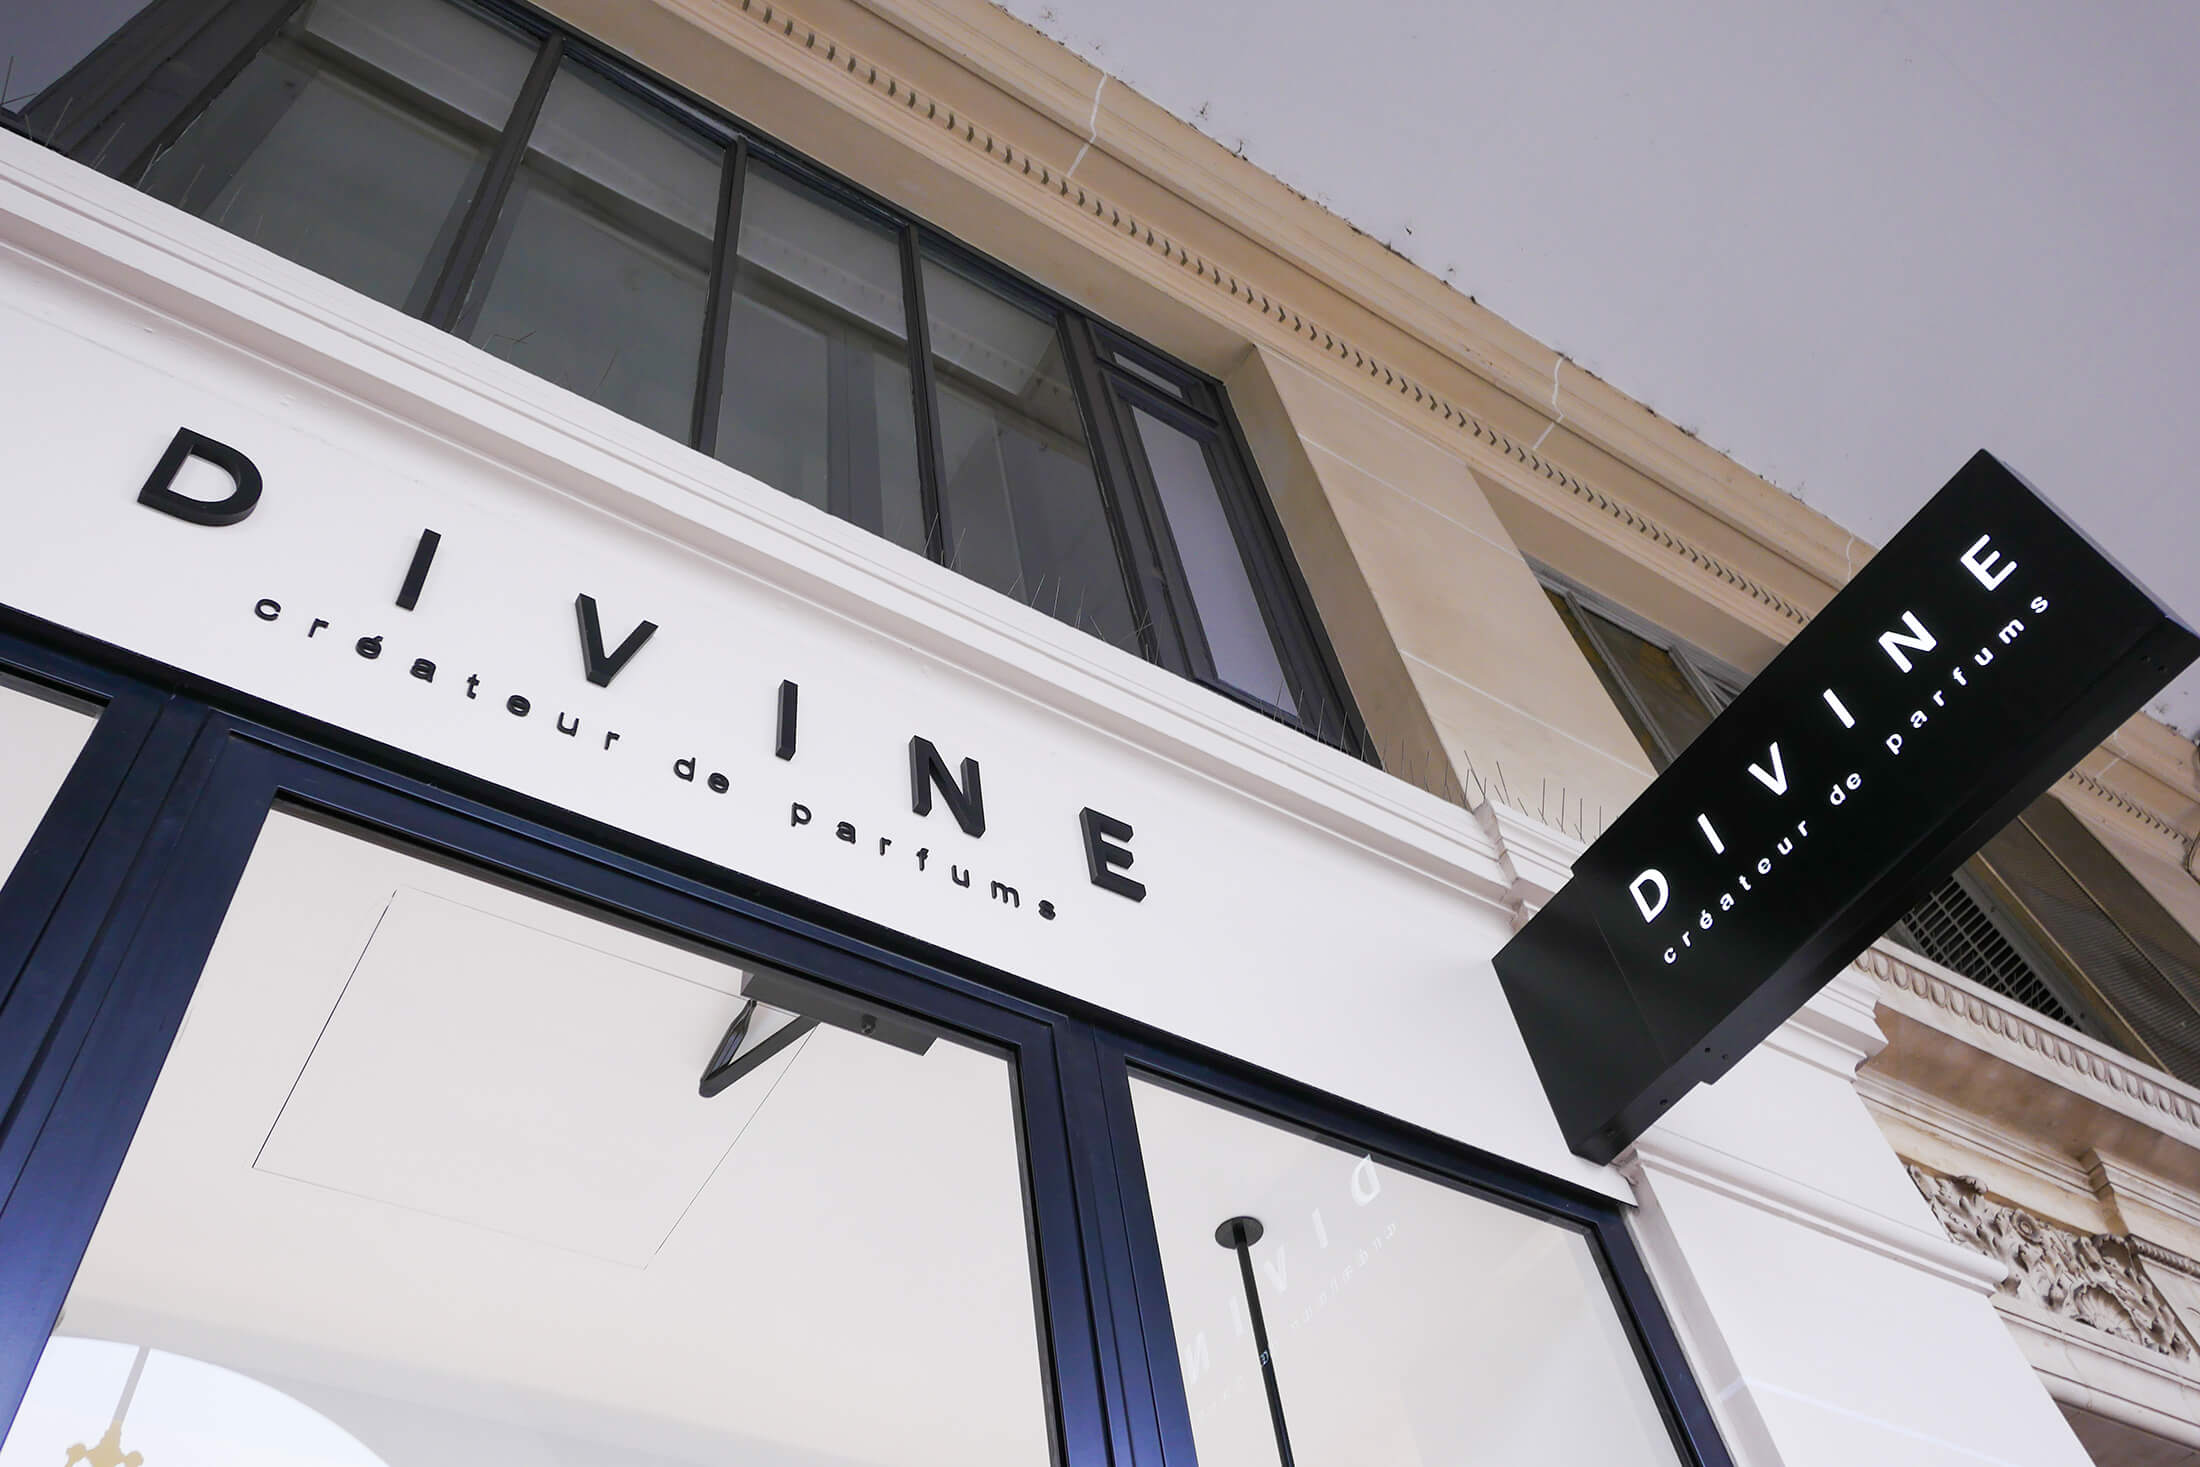 boutique divine france et international